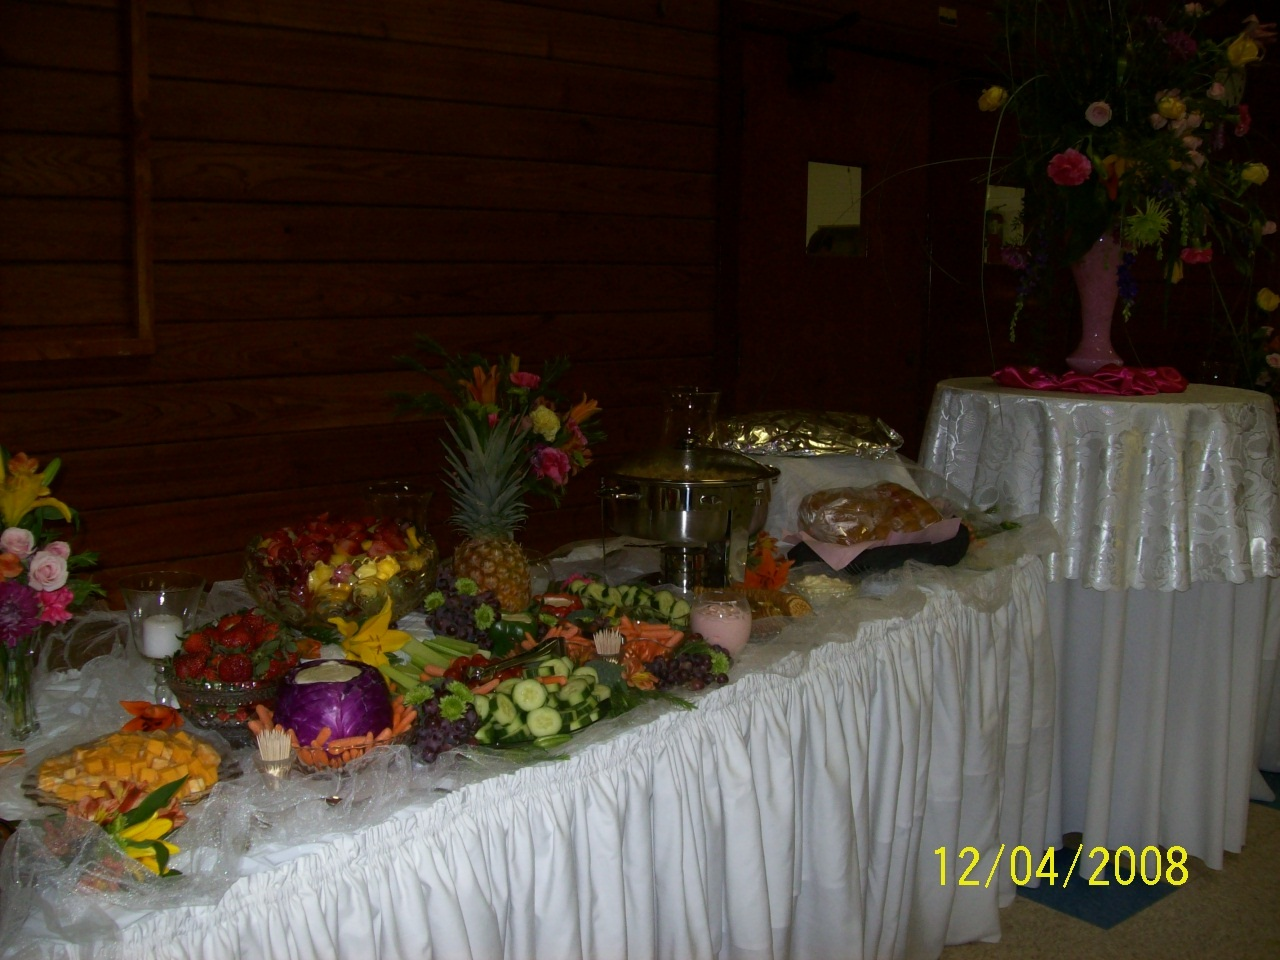 Reception, Flowers & Decor, Food, Table, Buffet